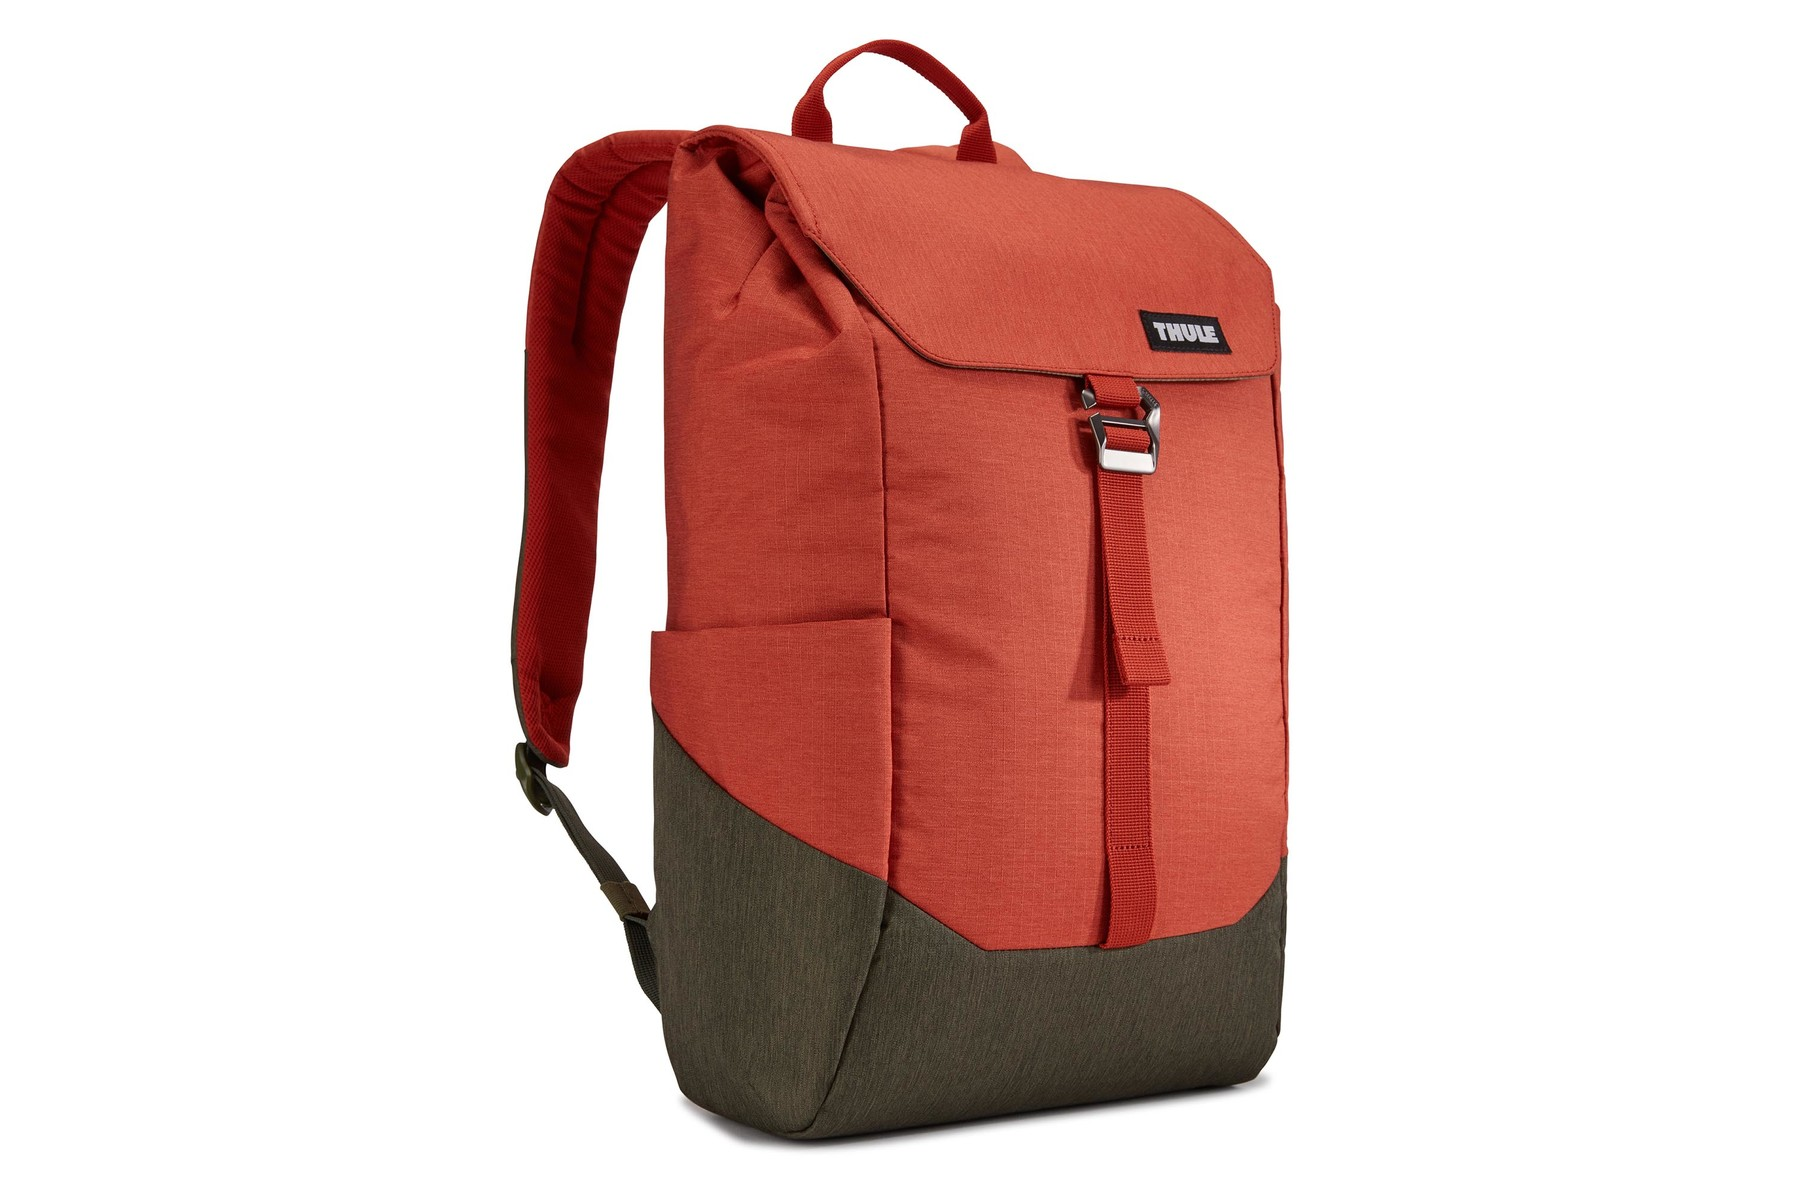 Рюкзак Thule Lithos Backpack 16 л (Rooibos/Forest Night)